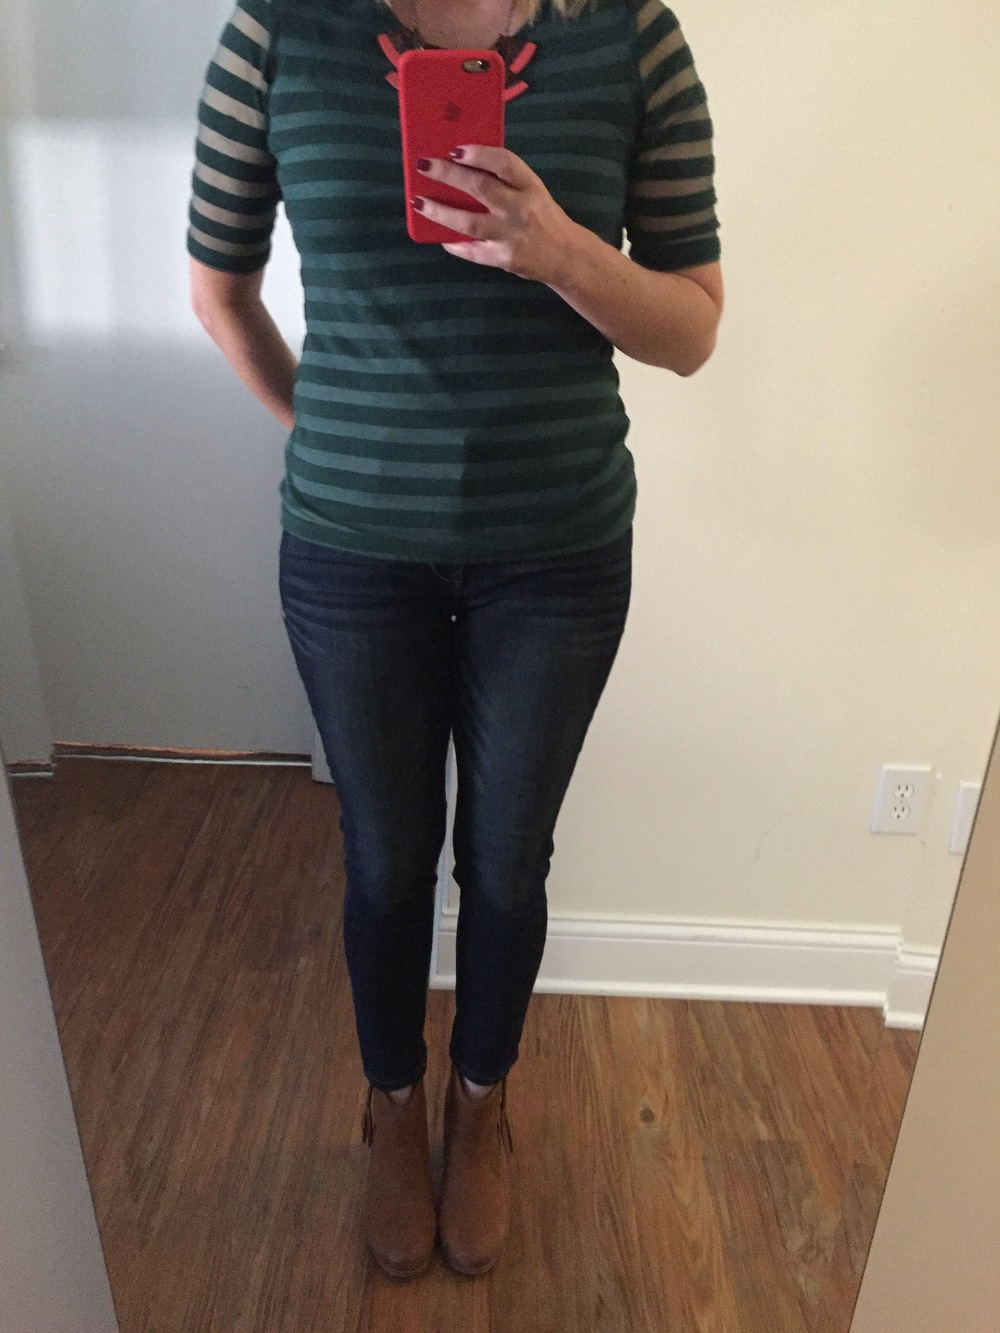 Top: Anthropologie, Jeans: Express,  Dark Wash Mid Rise Supersoft Jean Legging , Boots: Aldo, Necklace: Anthropologie